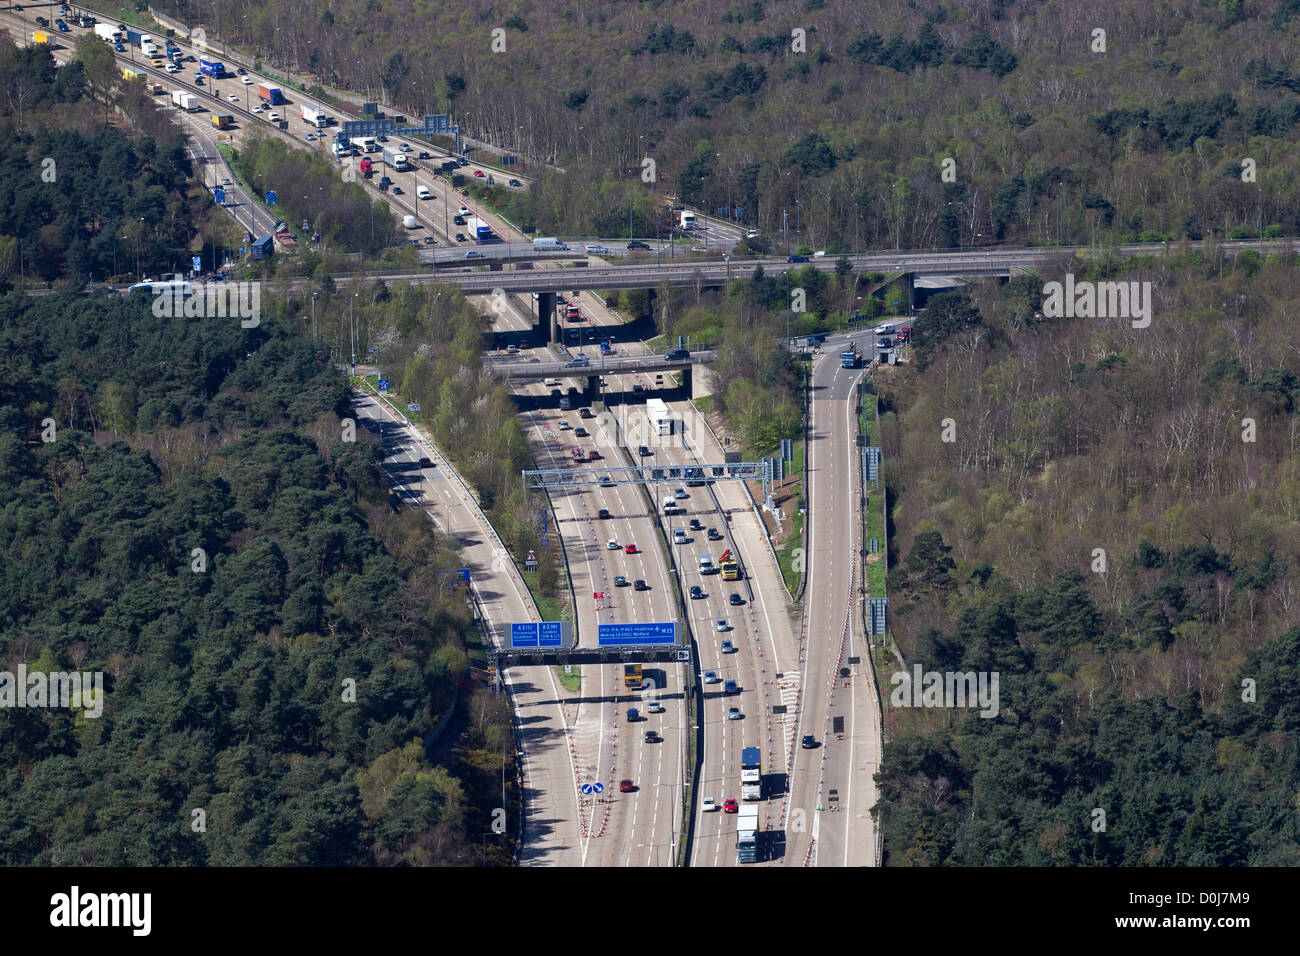 Aerial view of  M25 Junction 10 where the motorway meets the A3. - Stock Image